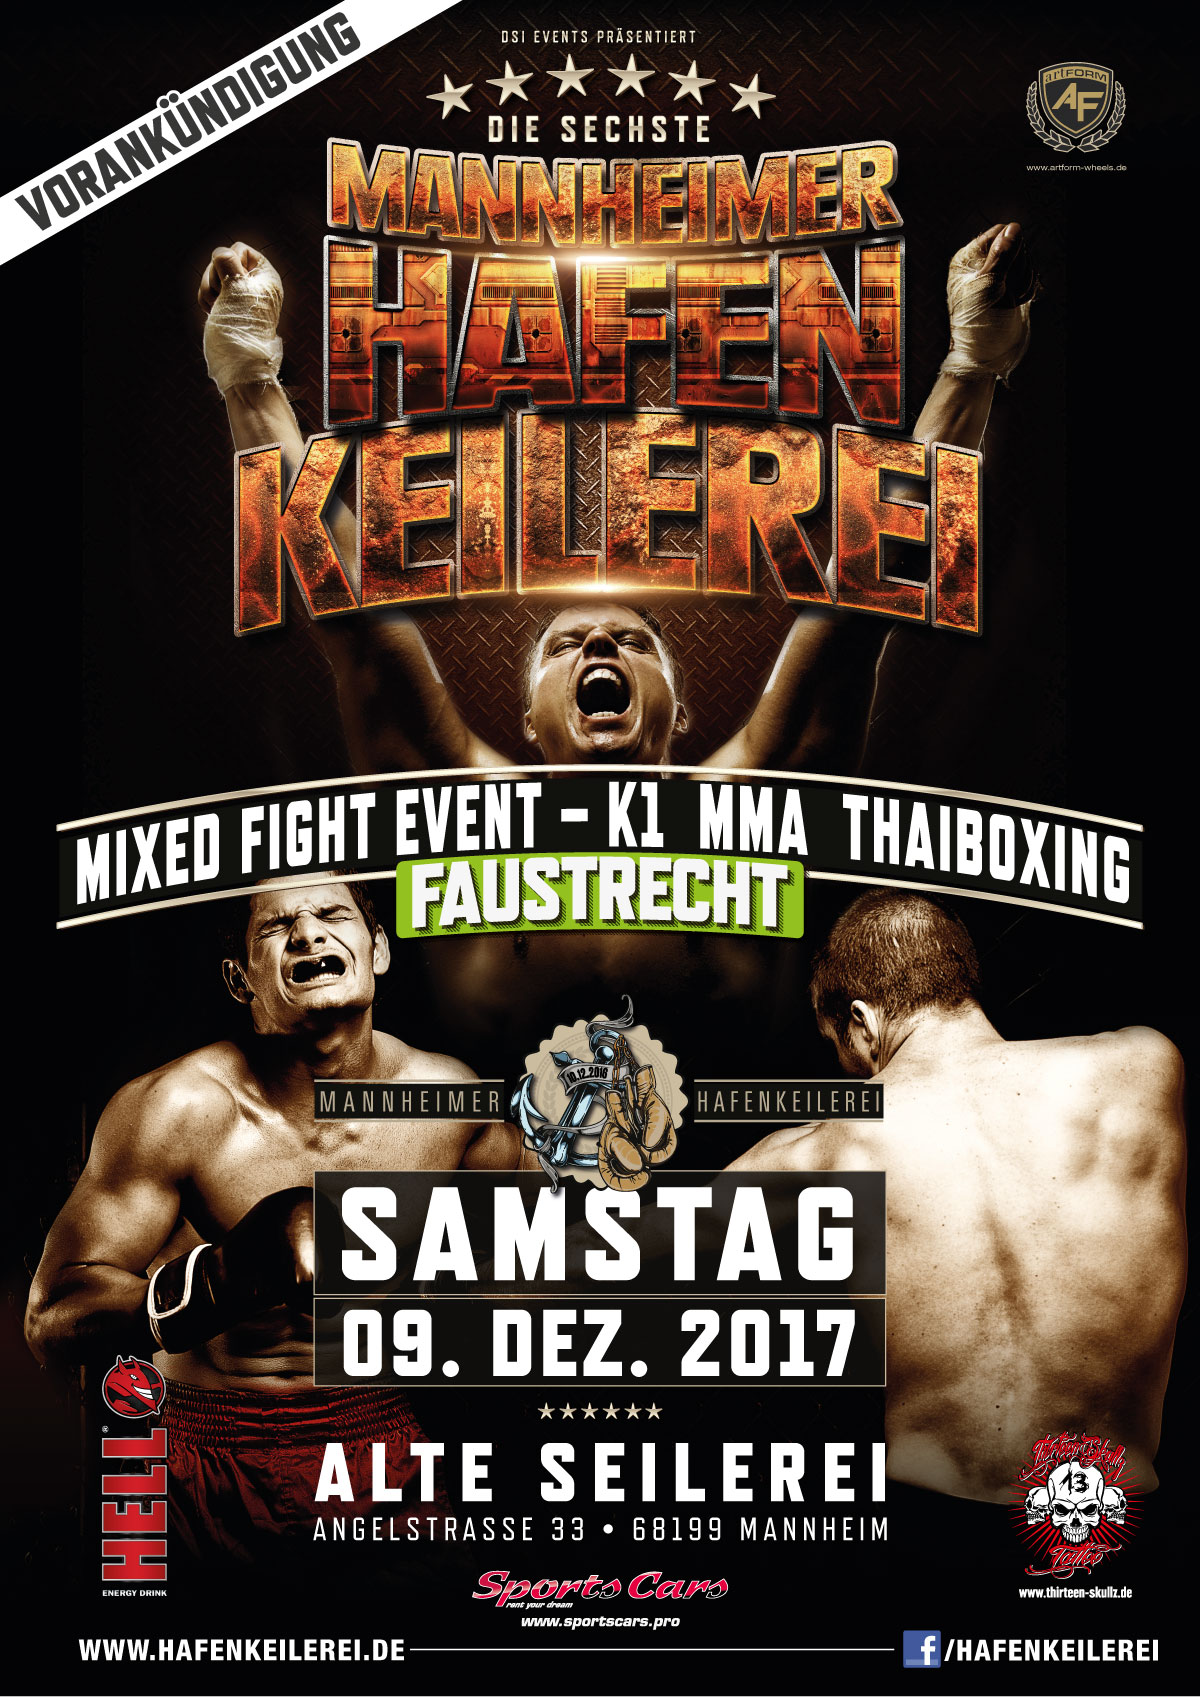 Mannheimer Hafenkeilerei Mixed Fight Event in der alten Seilerei Mannheim Flyer